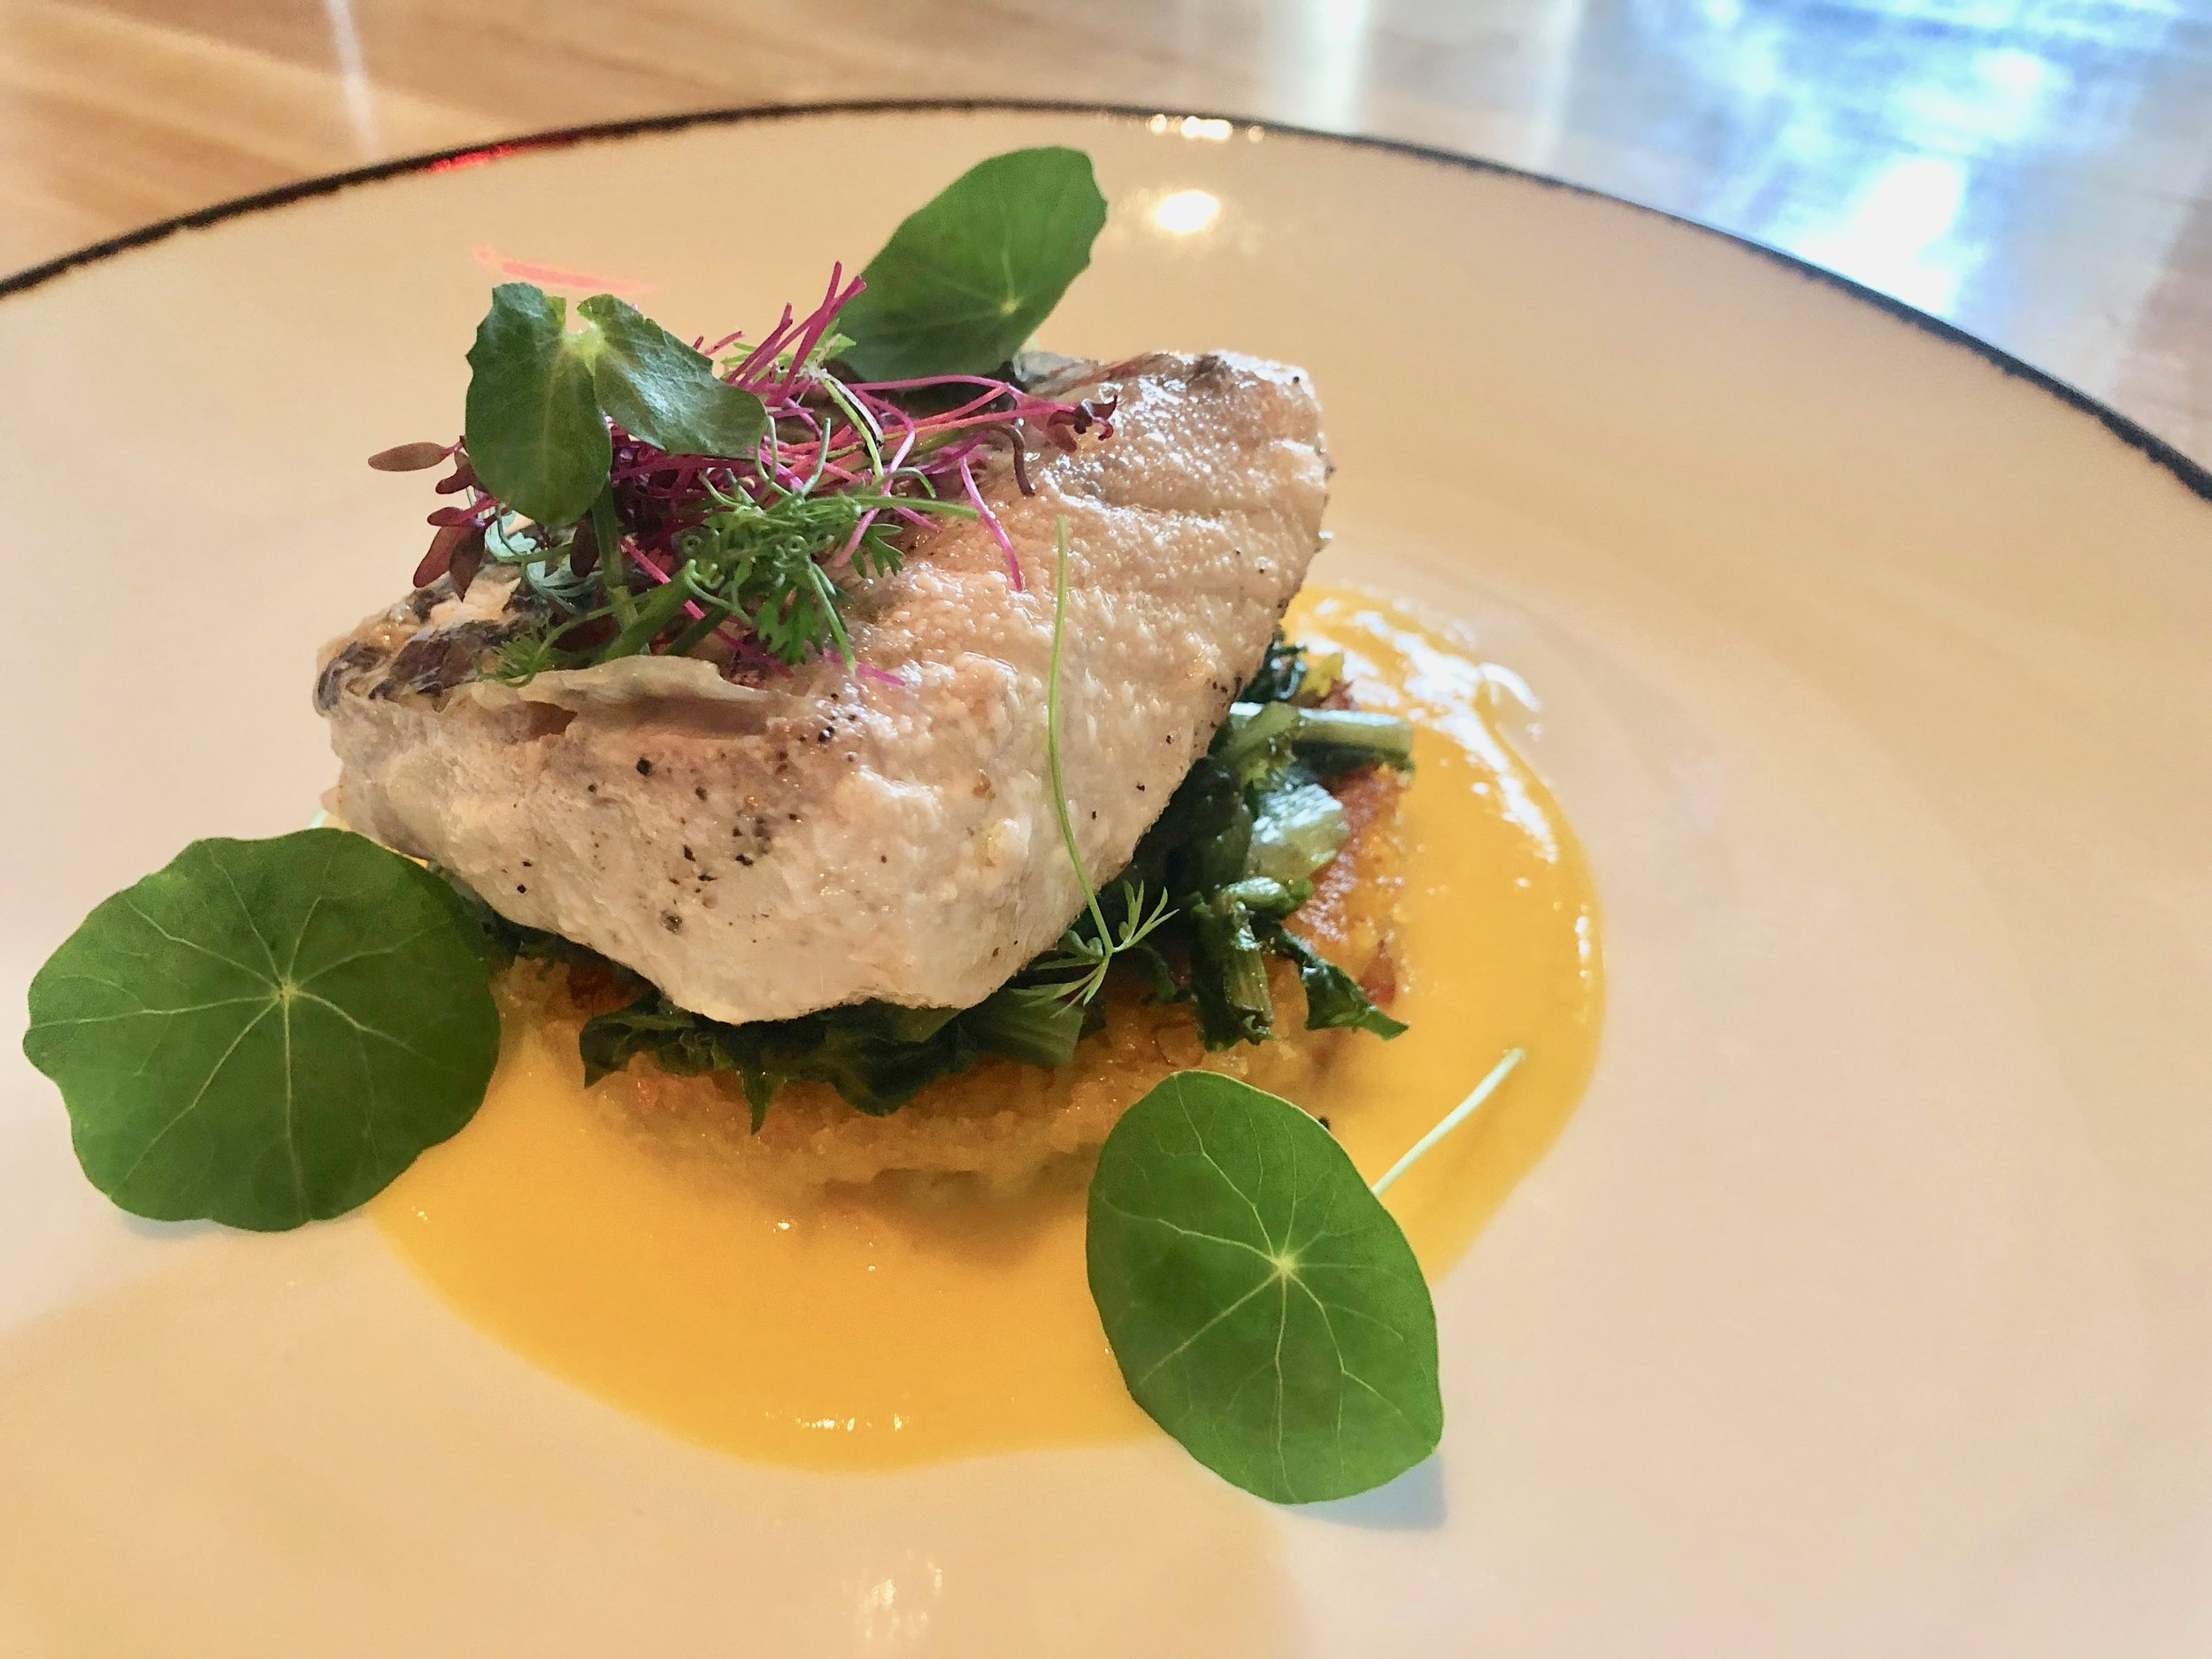 Ravello –Cernia. Oil-poached local snapper on a saffron risotto cake with lemon and fresh herbs. Now here's a meal. Splendid. Just splendid.